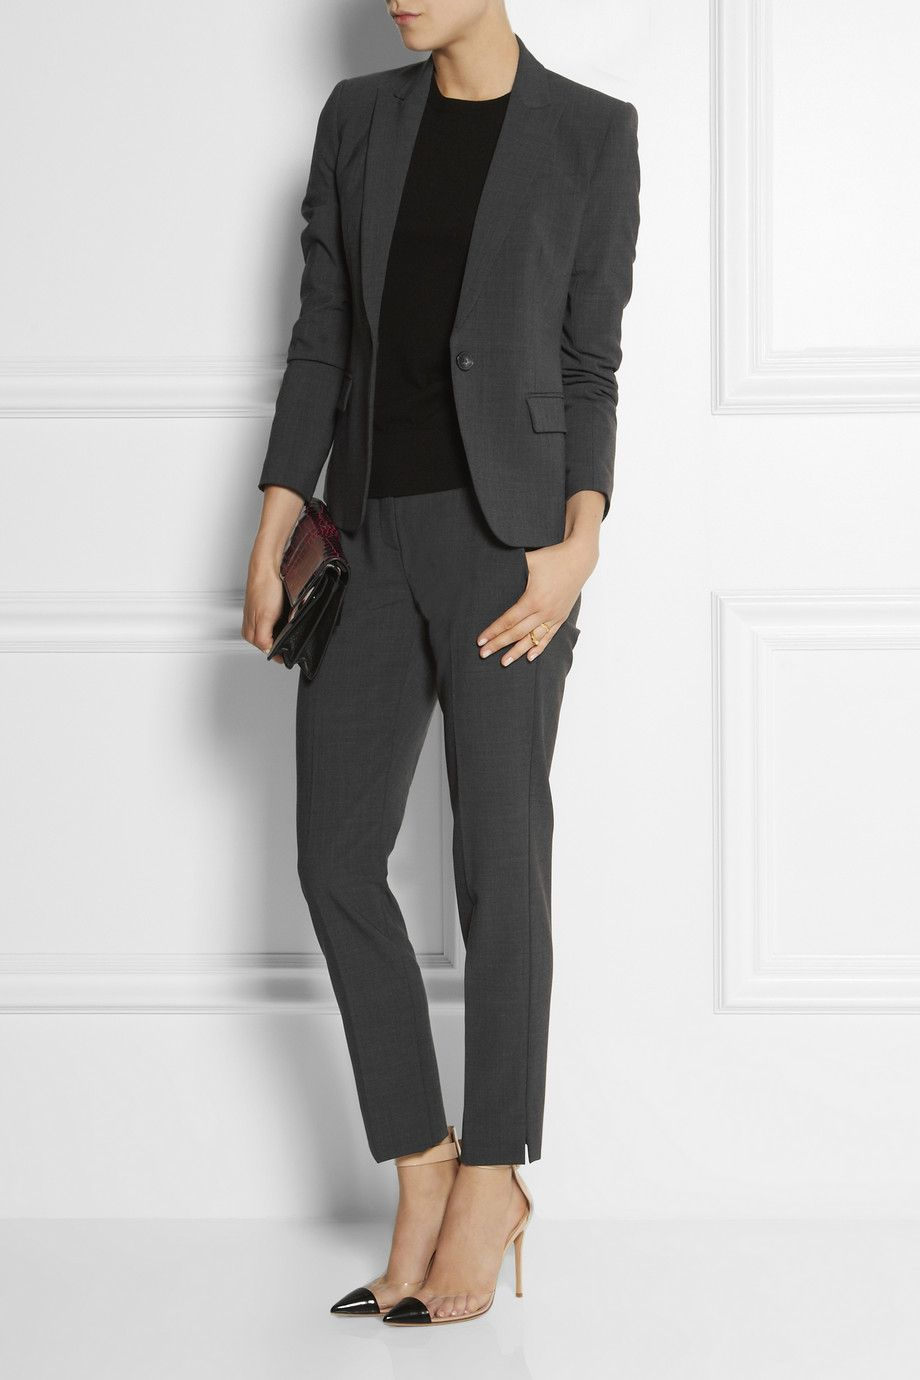 e1b2210186de Dary Gray Theory Pantsuit with black top and edgy